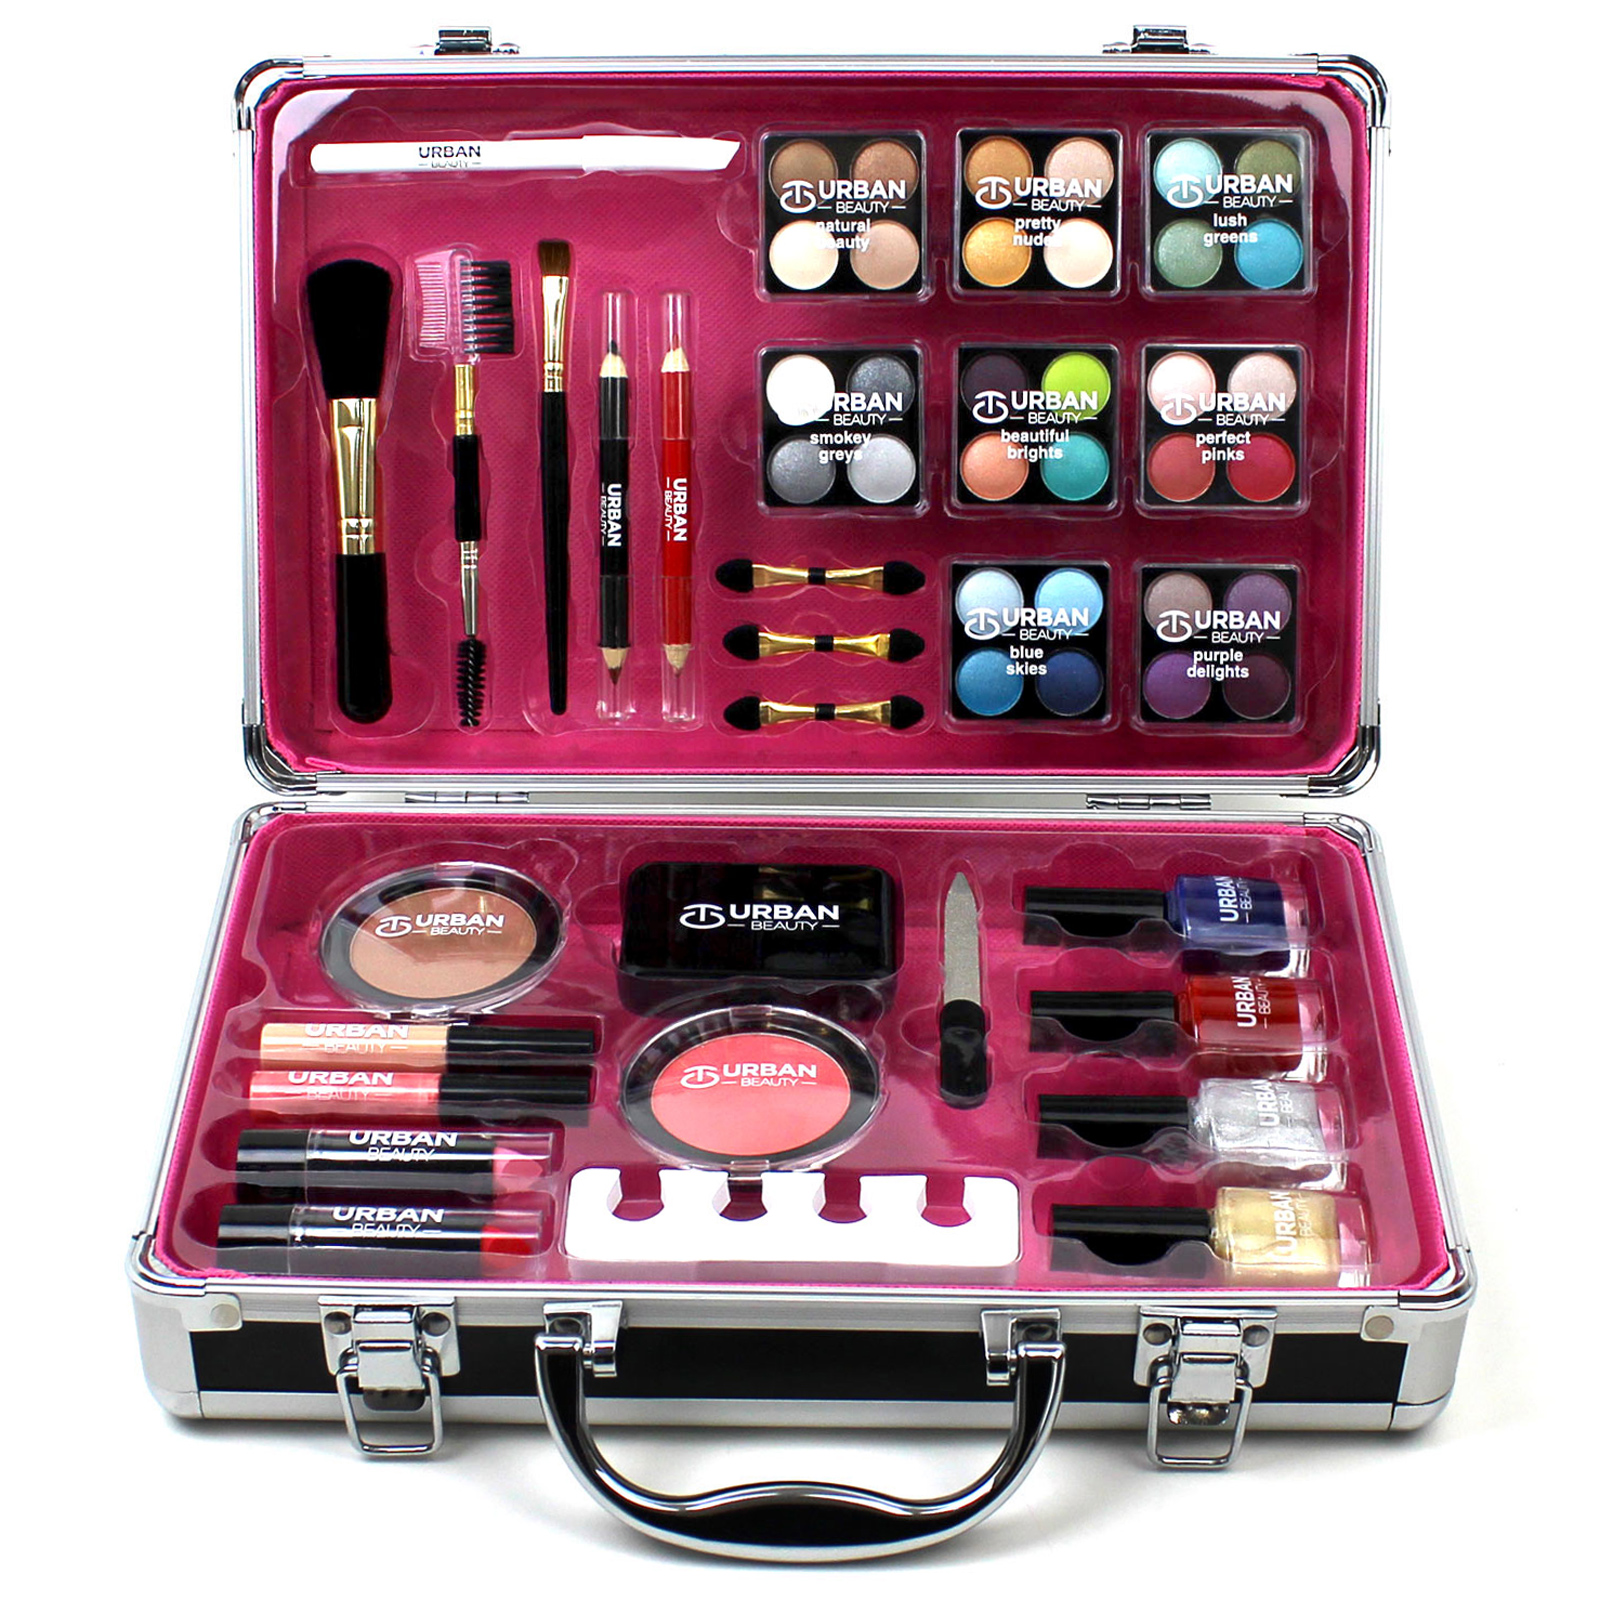 professional vanity case cosmetic make up urban beauty box. Black Bedroom Furniture Sets. Home Design Ideas